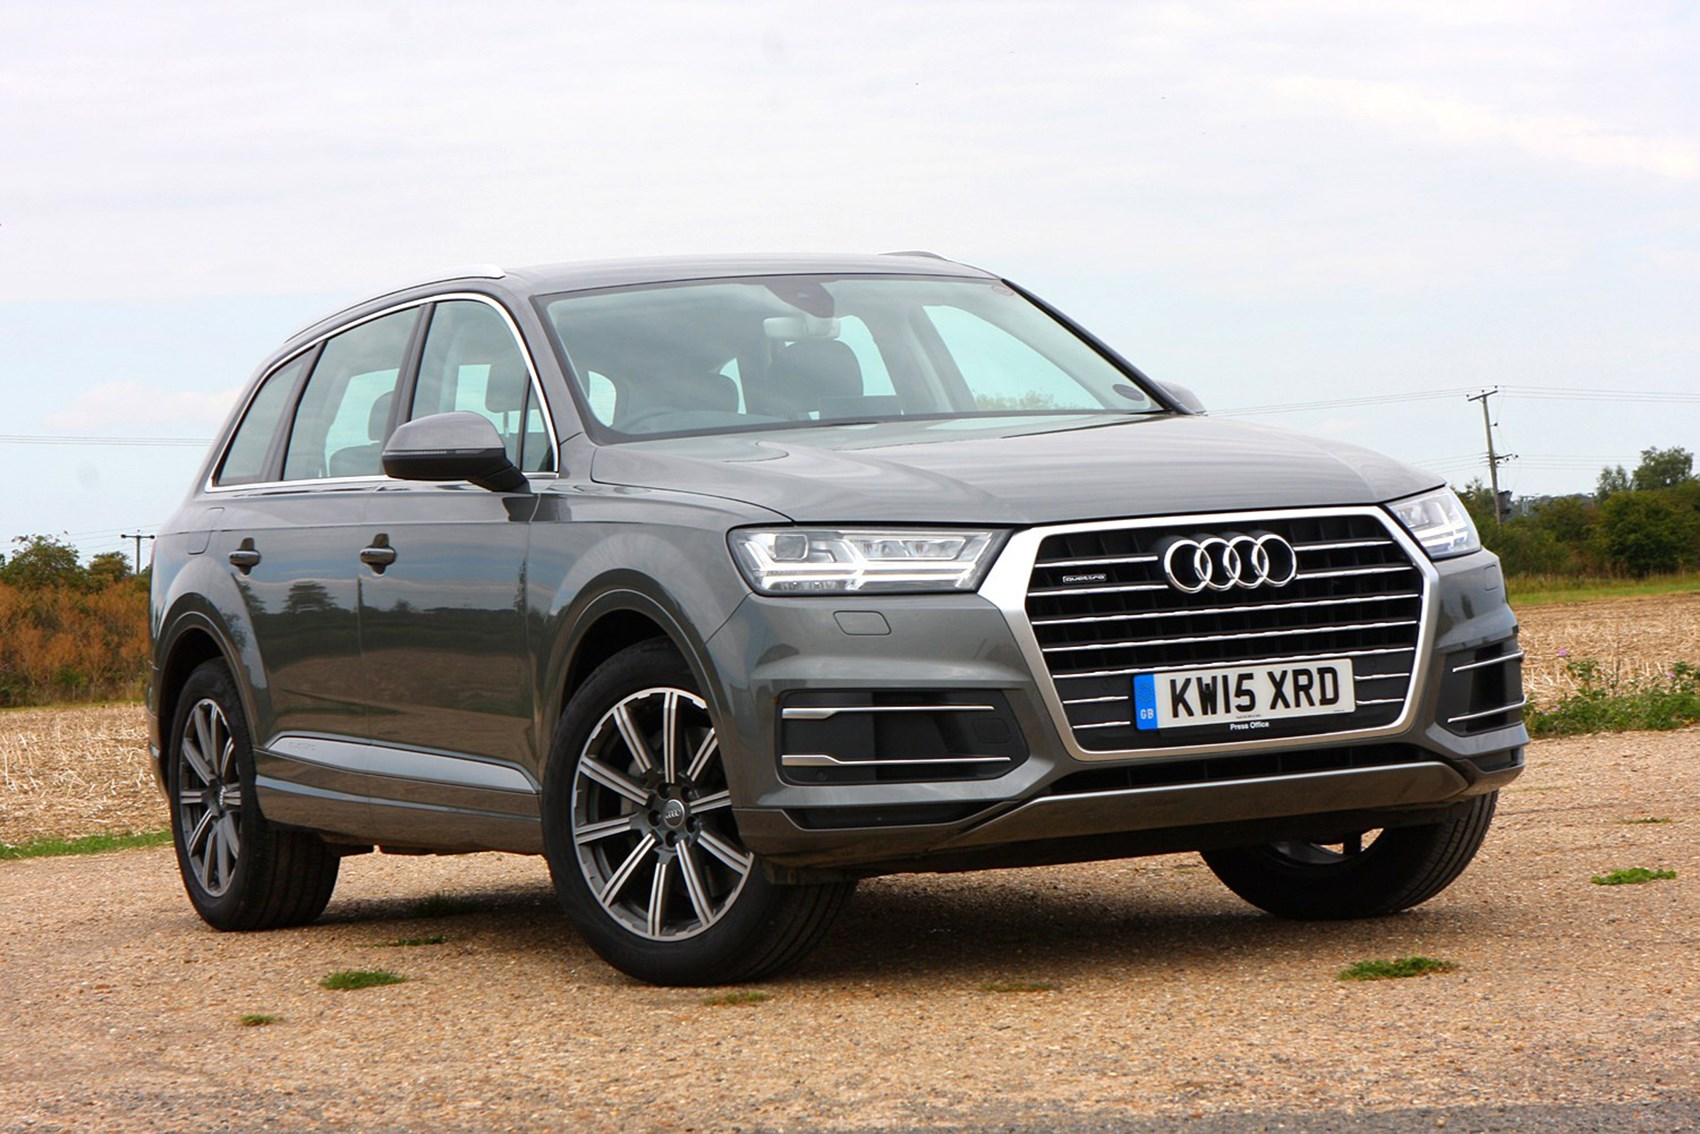 Audi Q7 - the best family SUVs